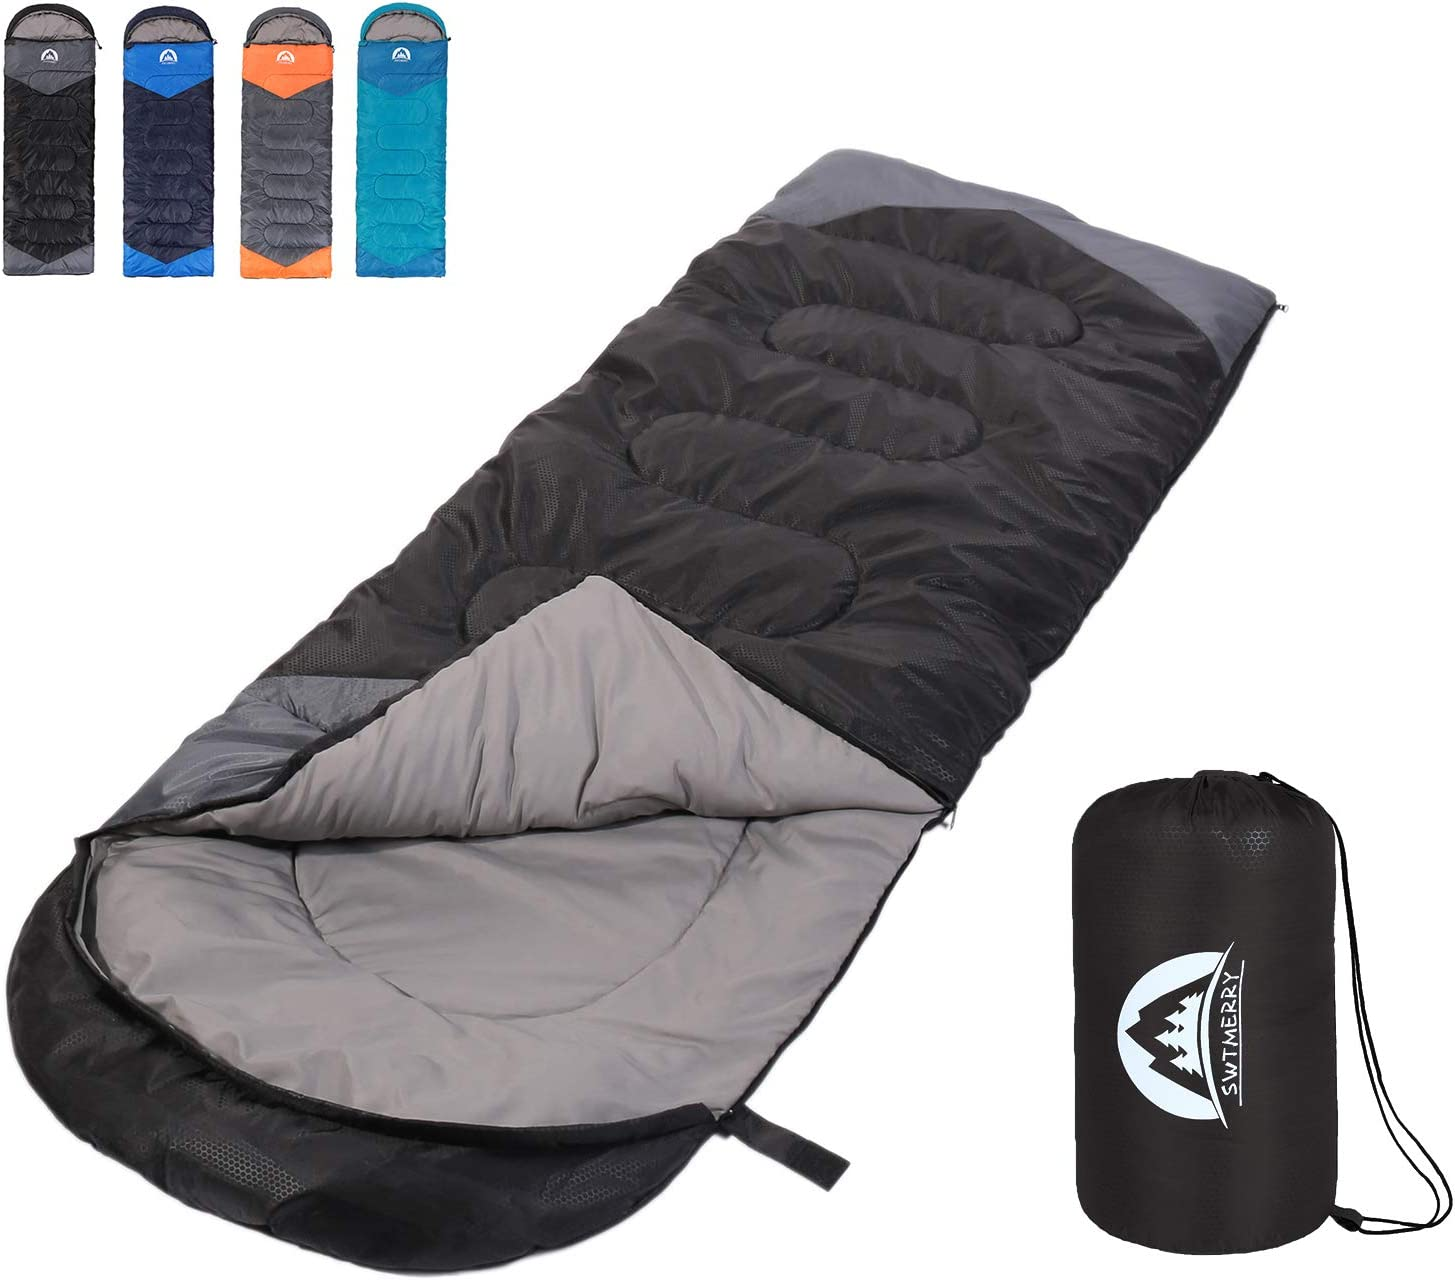 Girls /& Boys Great for 4 Season Warm /& Cold Weather Hiking Camping CER TAMI Sleeping Bag for Adults Perfect for Outdoor Backpacking Lightweight Waterproof Compact